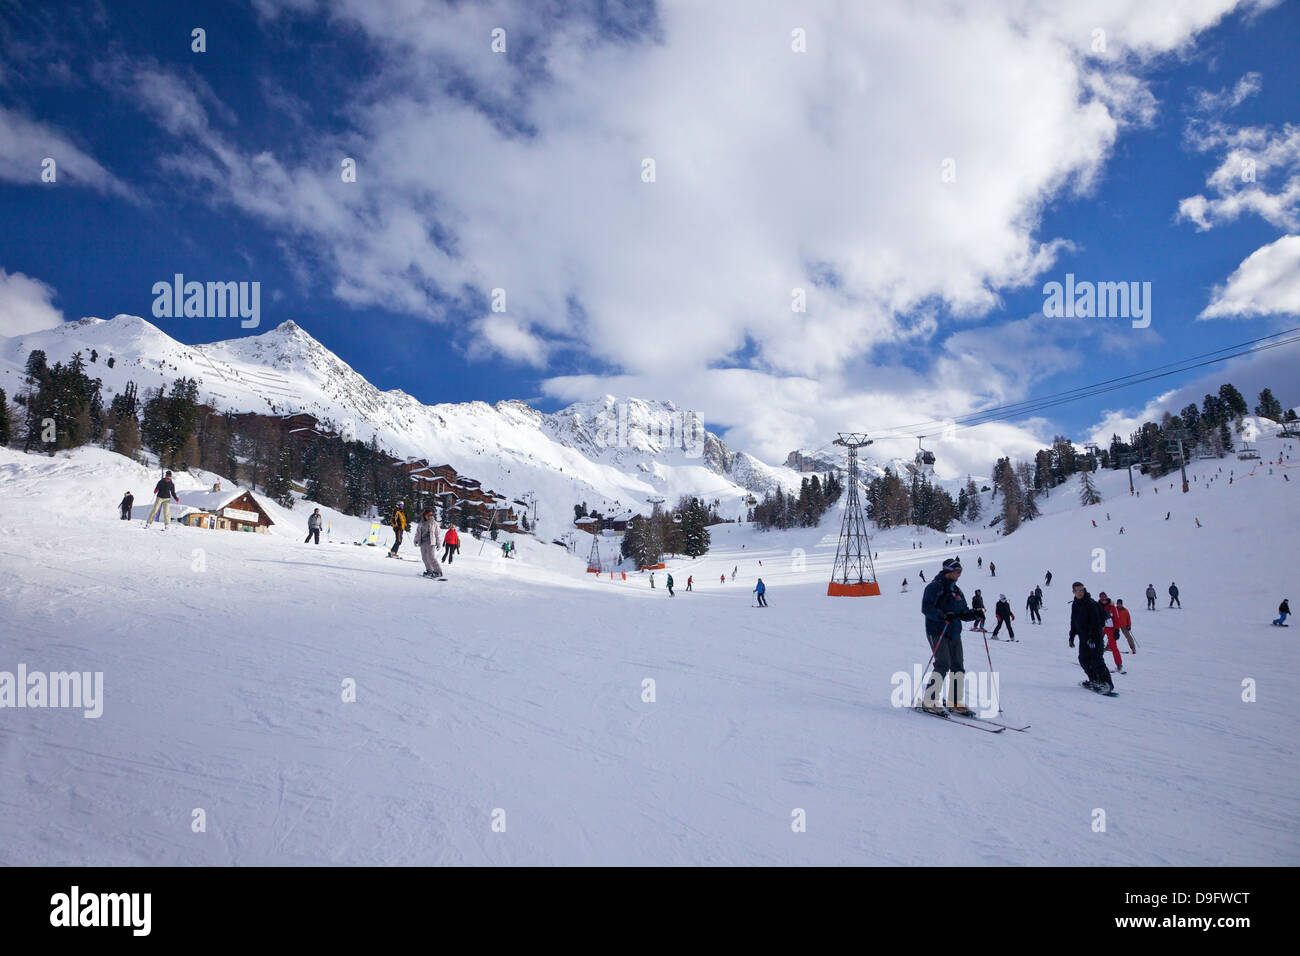 Skiers on piste at Belle Plagne, La Plagne, Savoie, French Alps, France - Stock Image